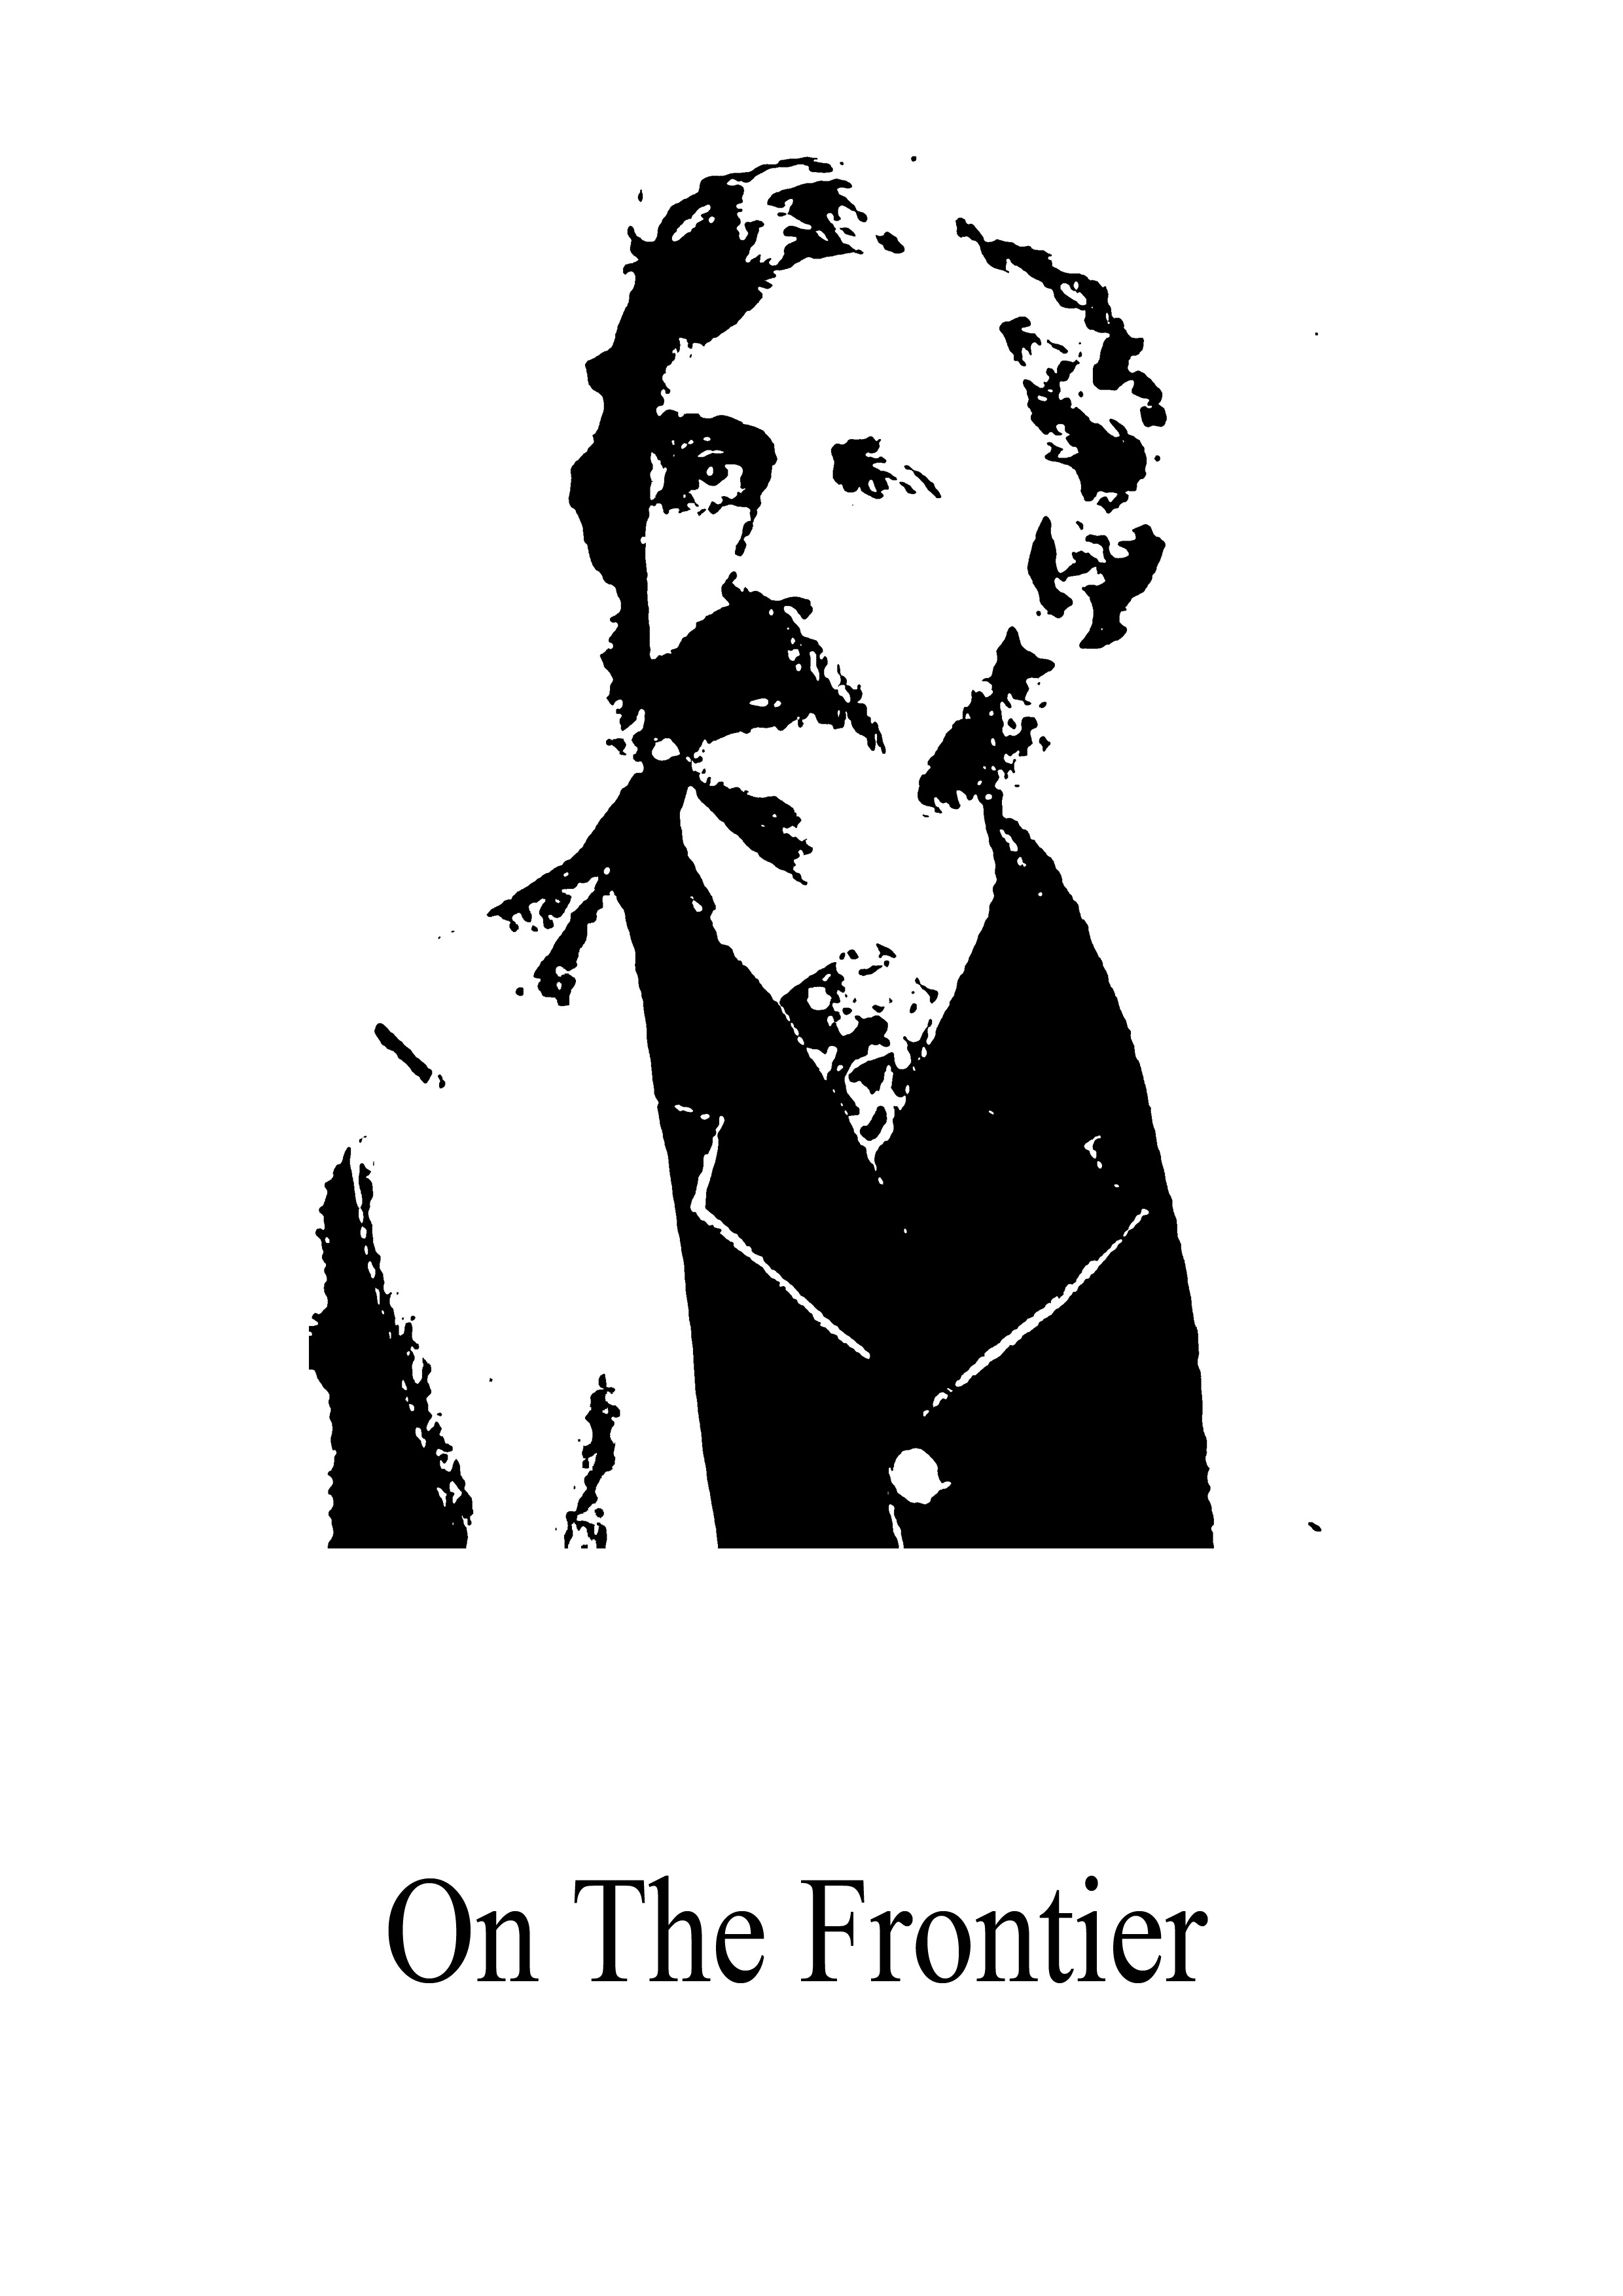 Bret Harte - On The Frontier